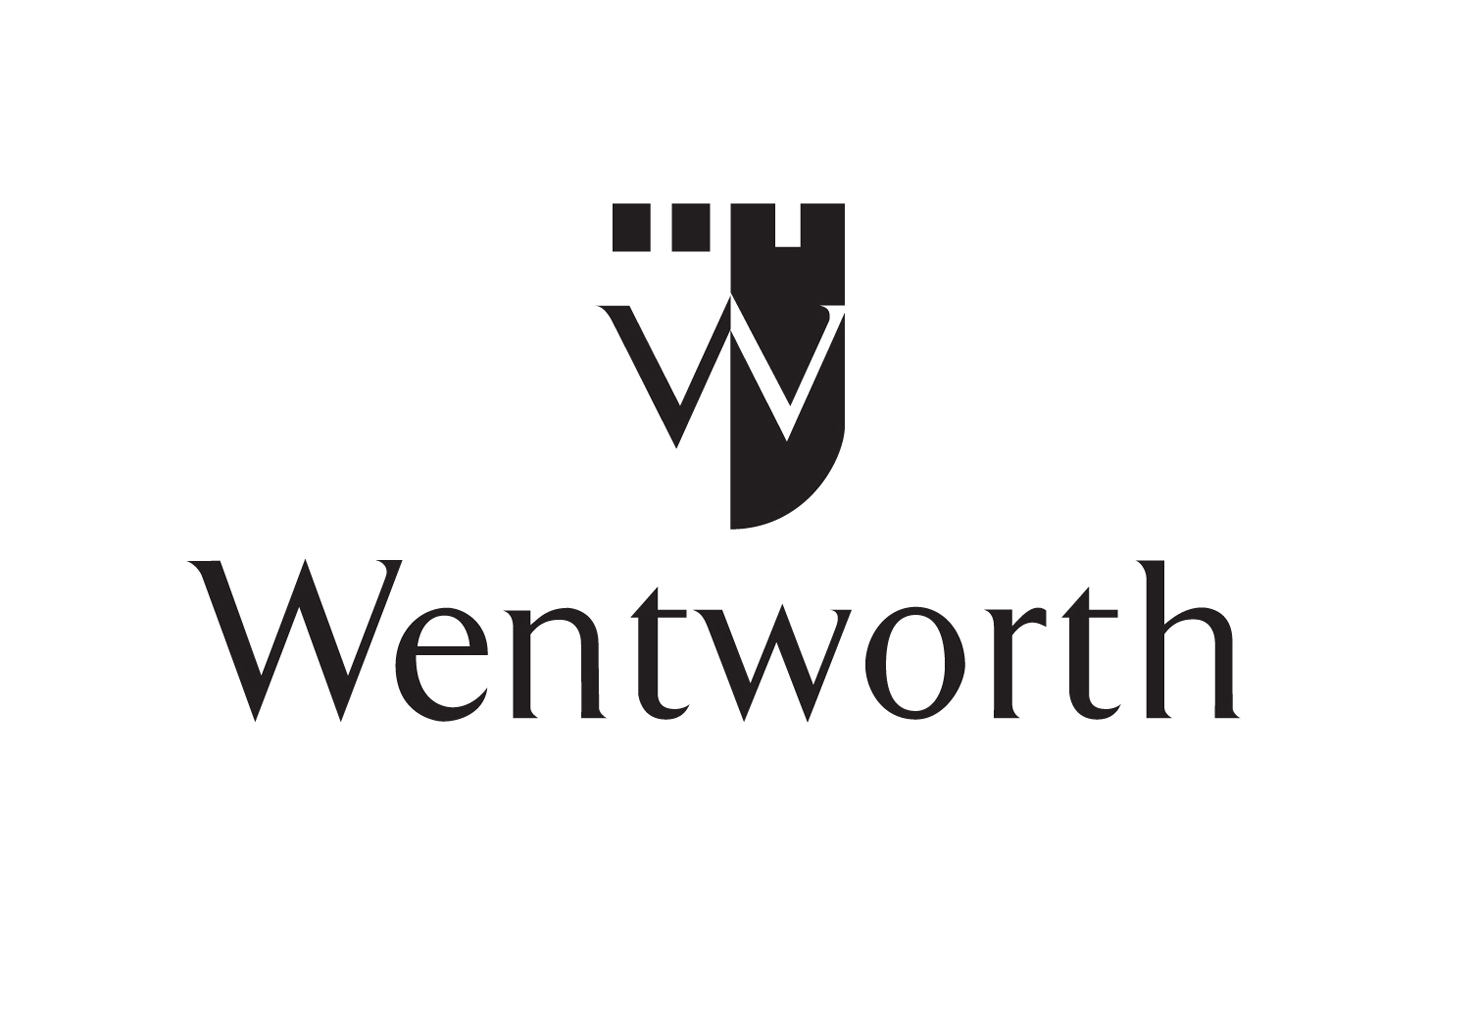 Wentworth b on w logo.jpeg